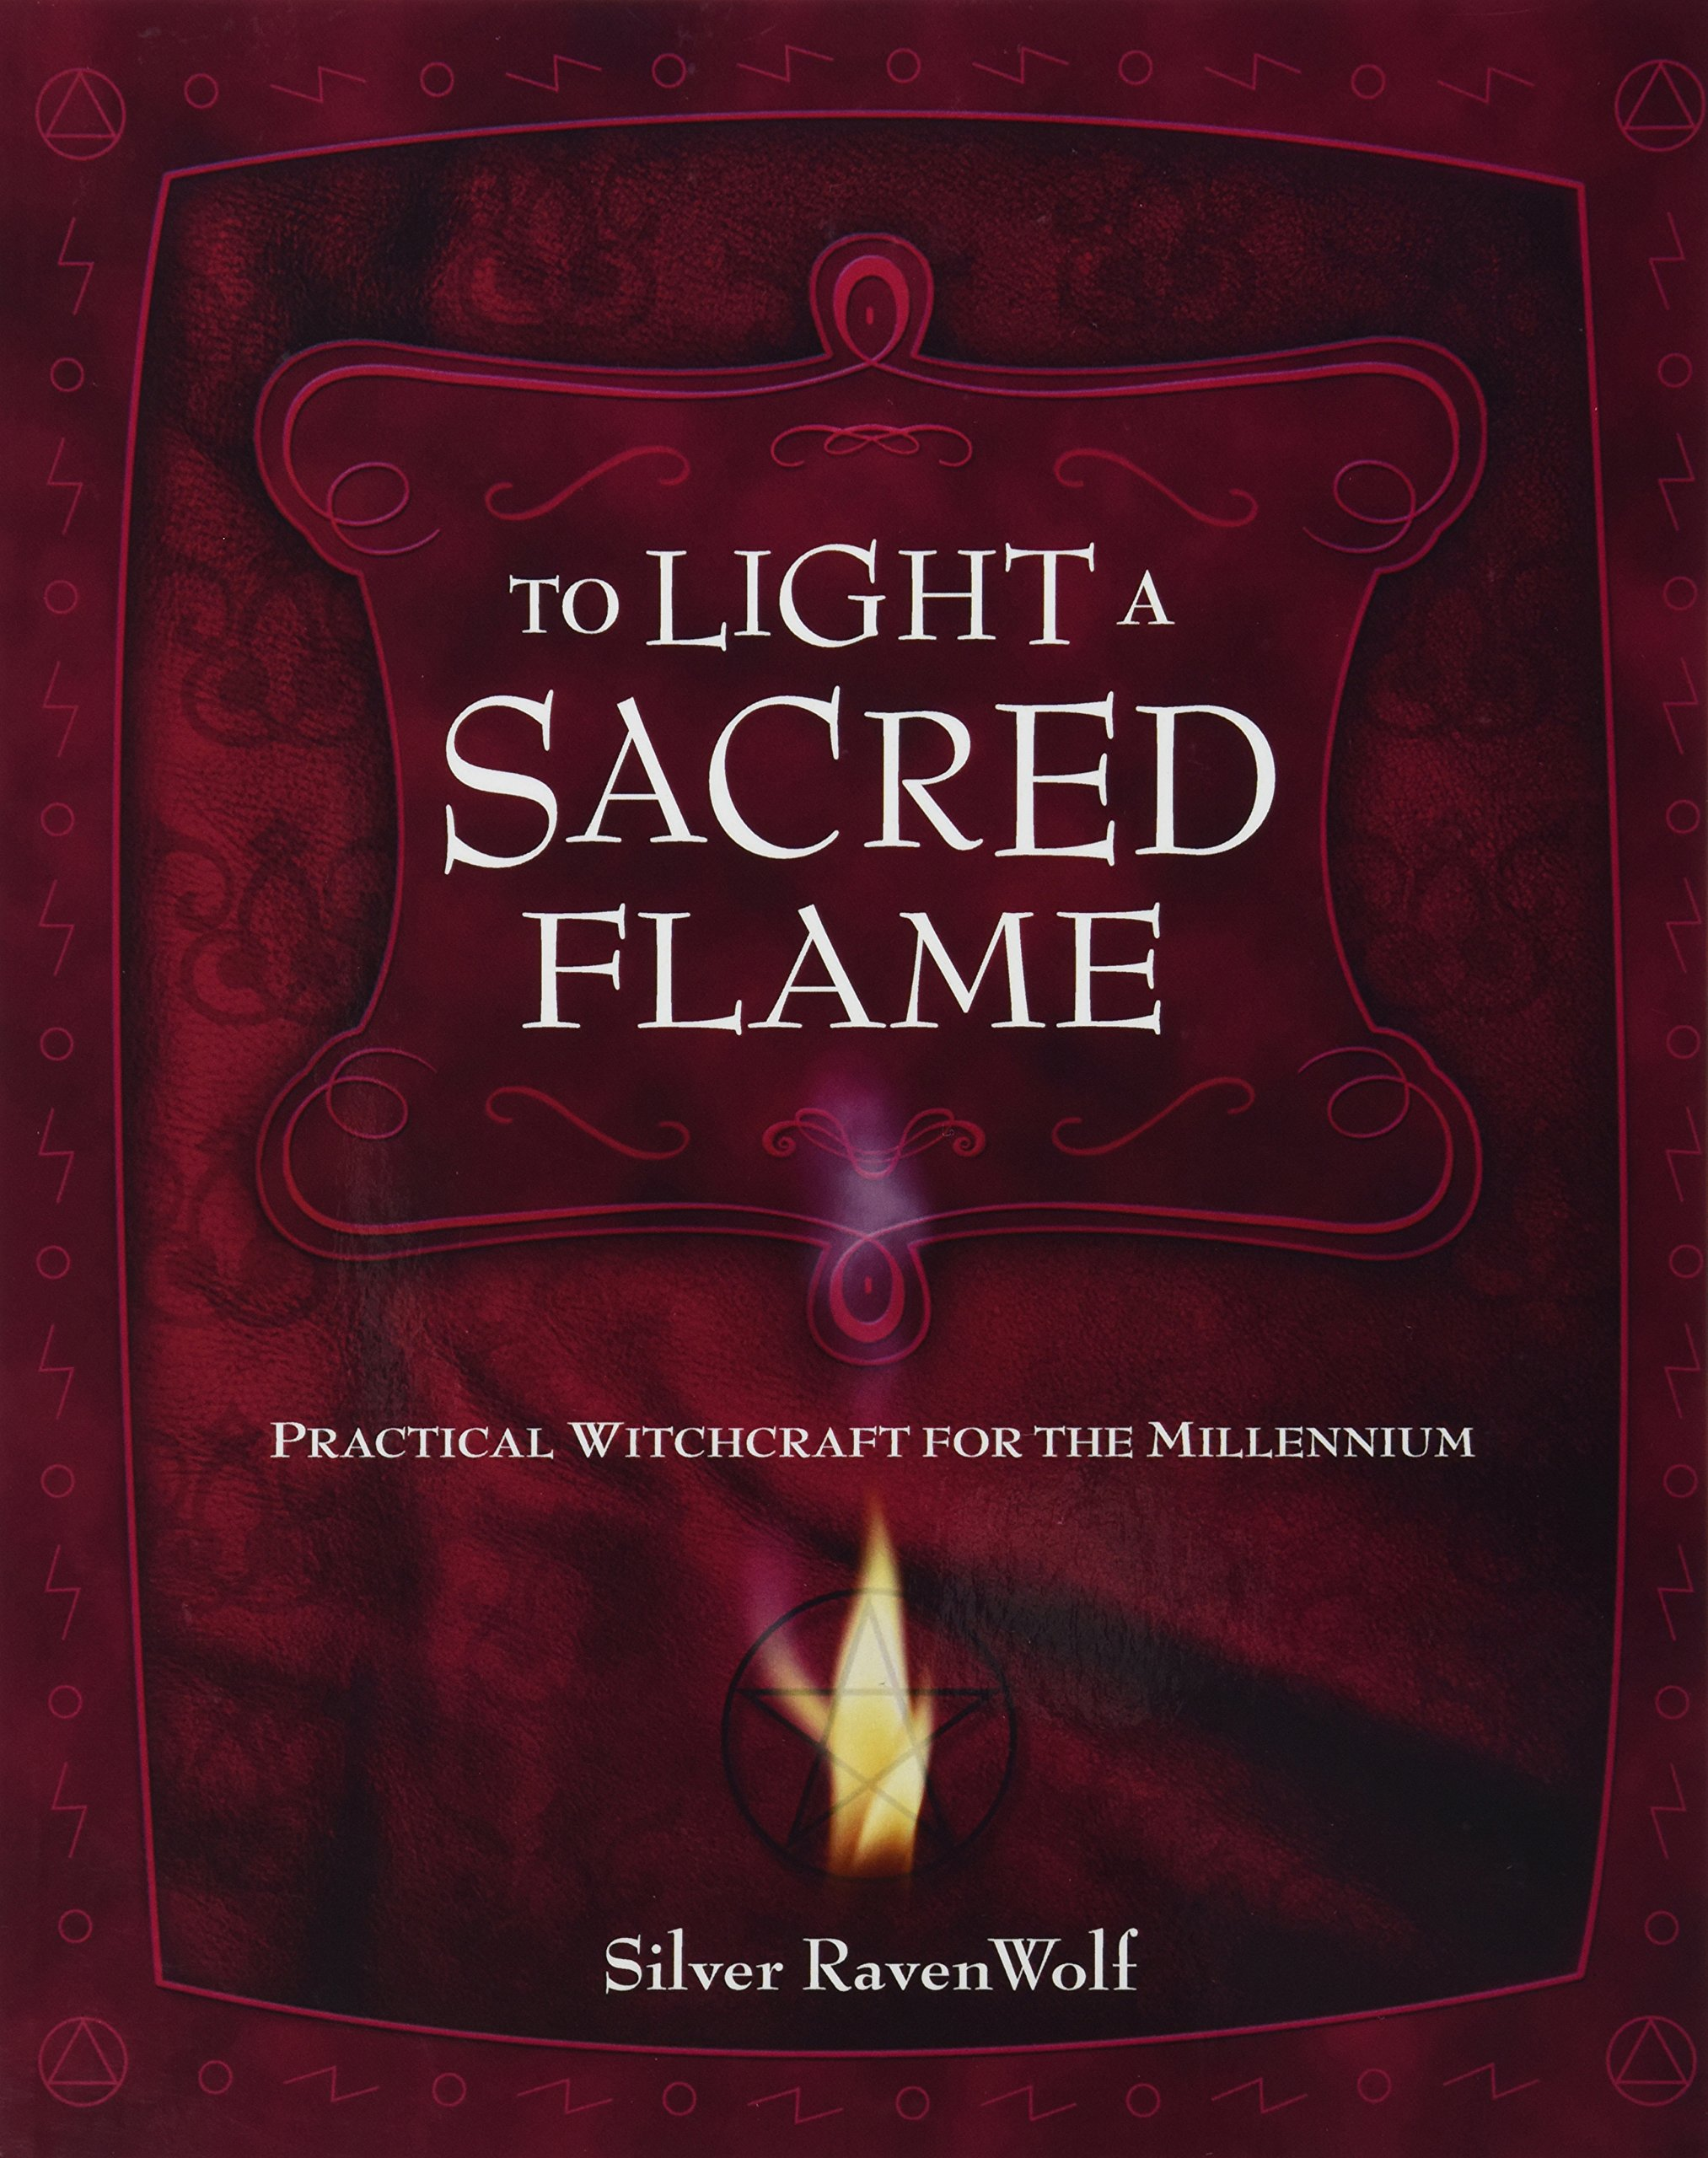 To Light A Sacred Flame: Practical Witchcraft for the